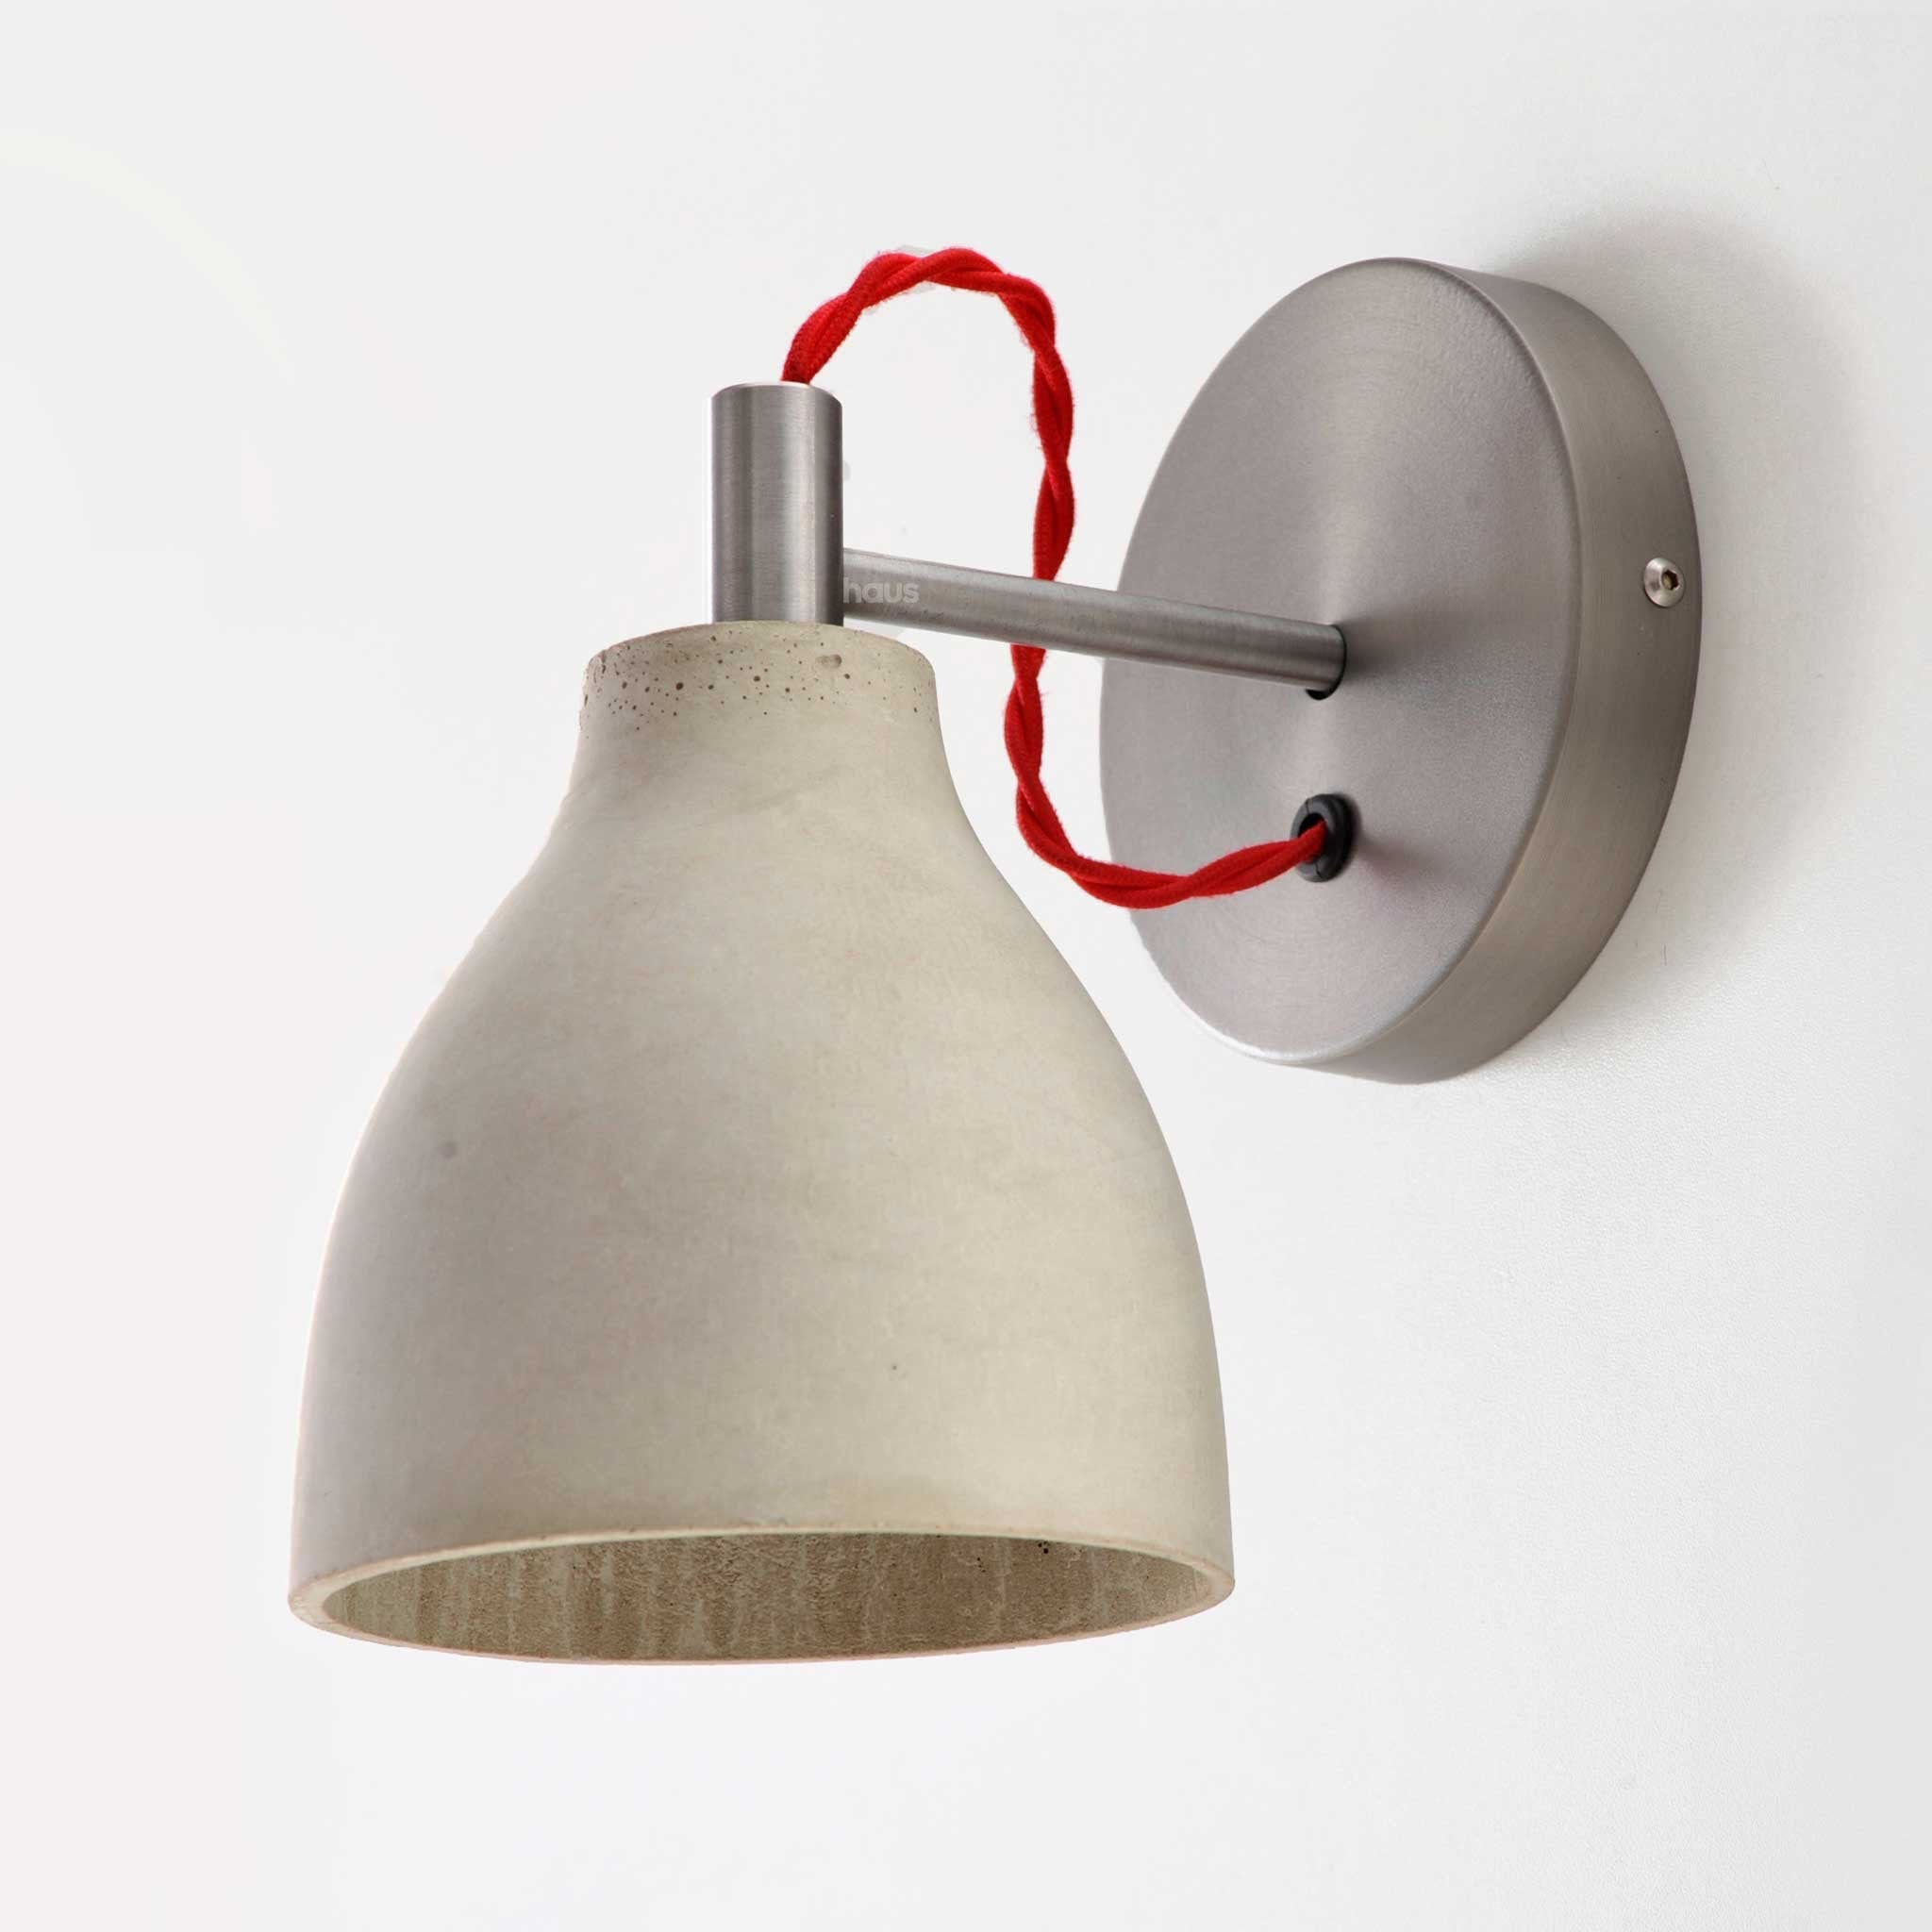 Heavy Wall light by Decode